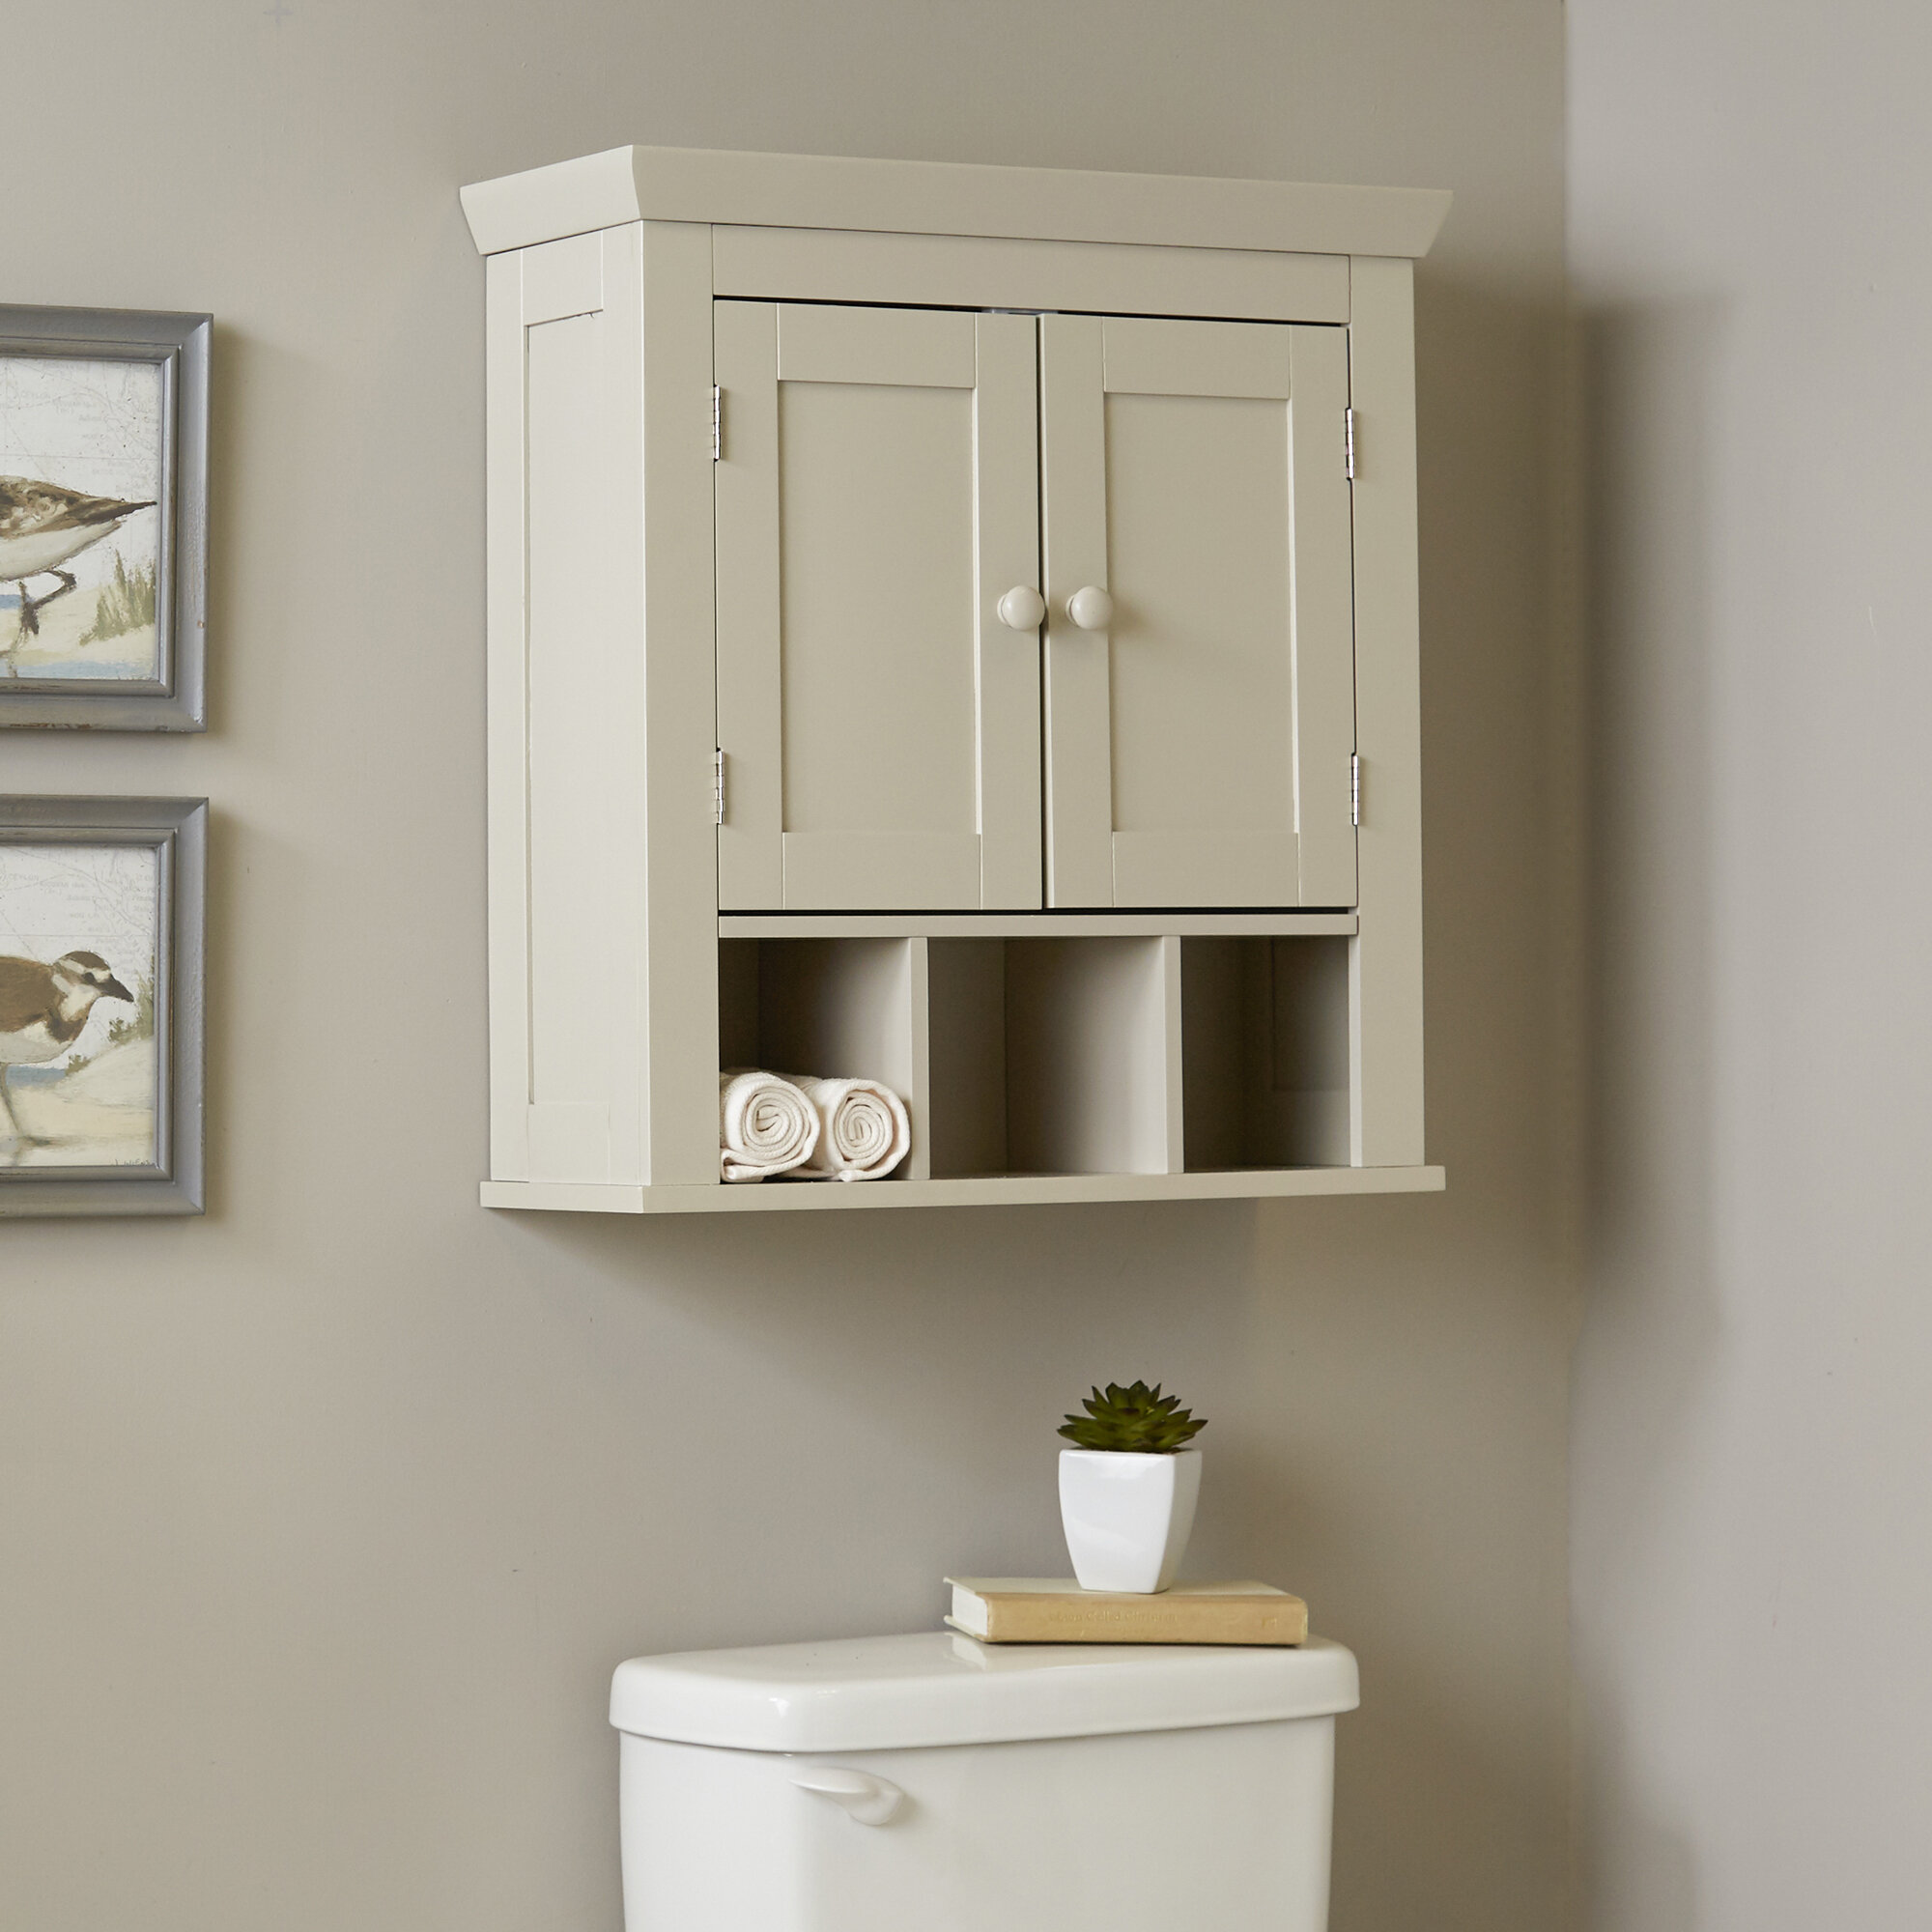 Birch Lane™ Caraway 22.4  W x 24  H Wall Mounted Cabinet u0026 Reviews | Birch Lane & Birch Lane™ Caraway 22.4